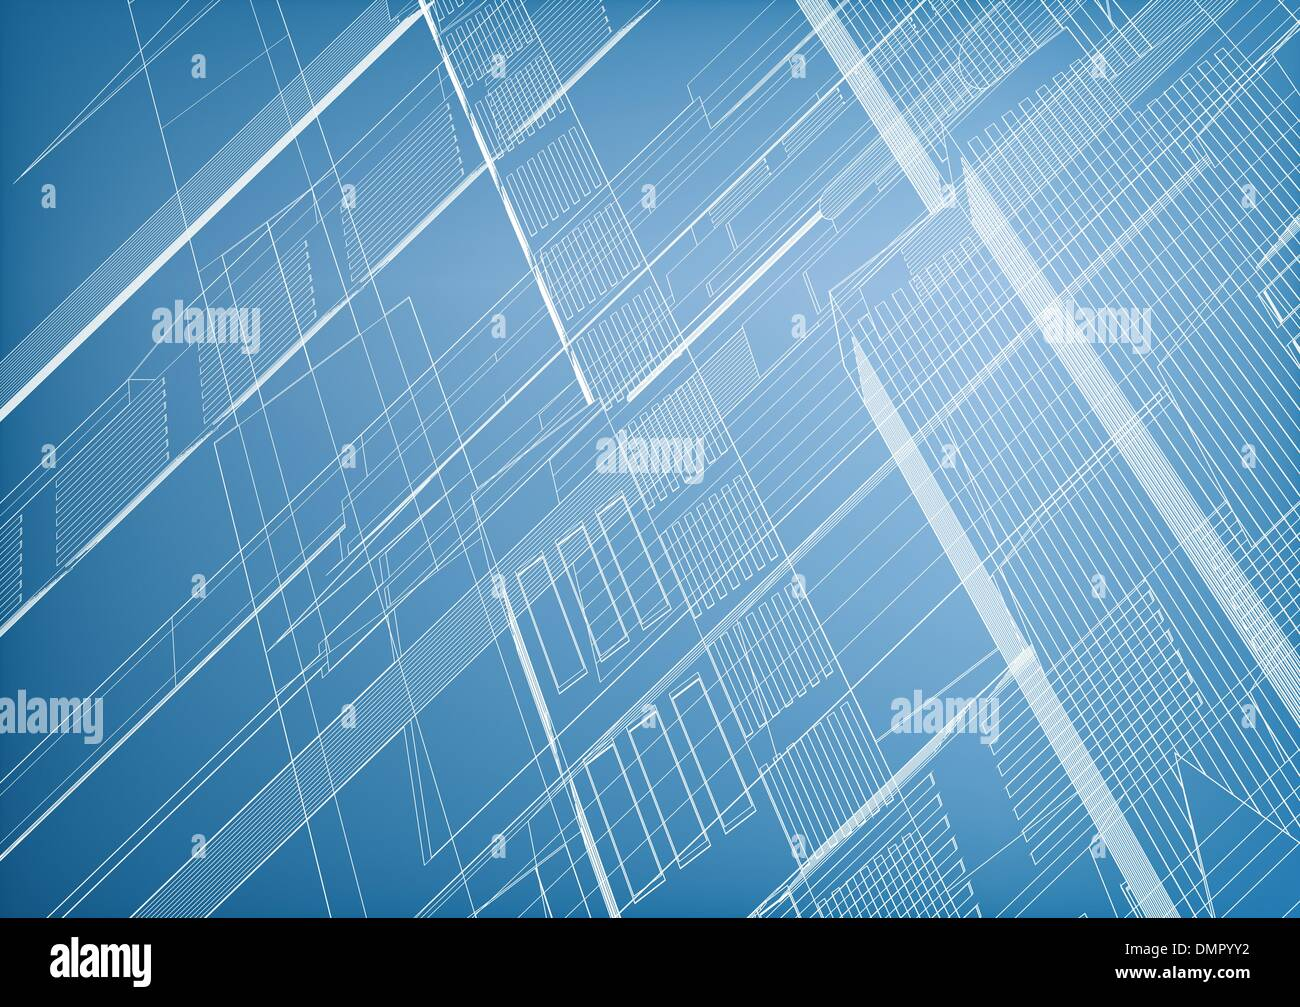 Lined abstract - Stock Image